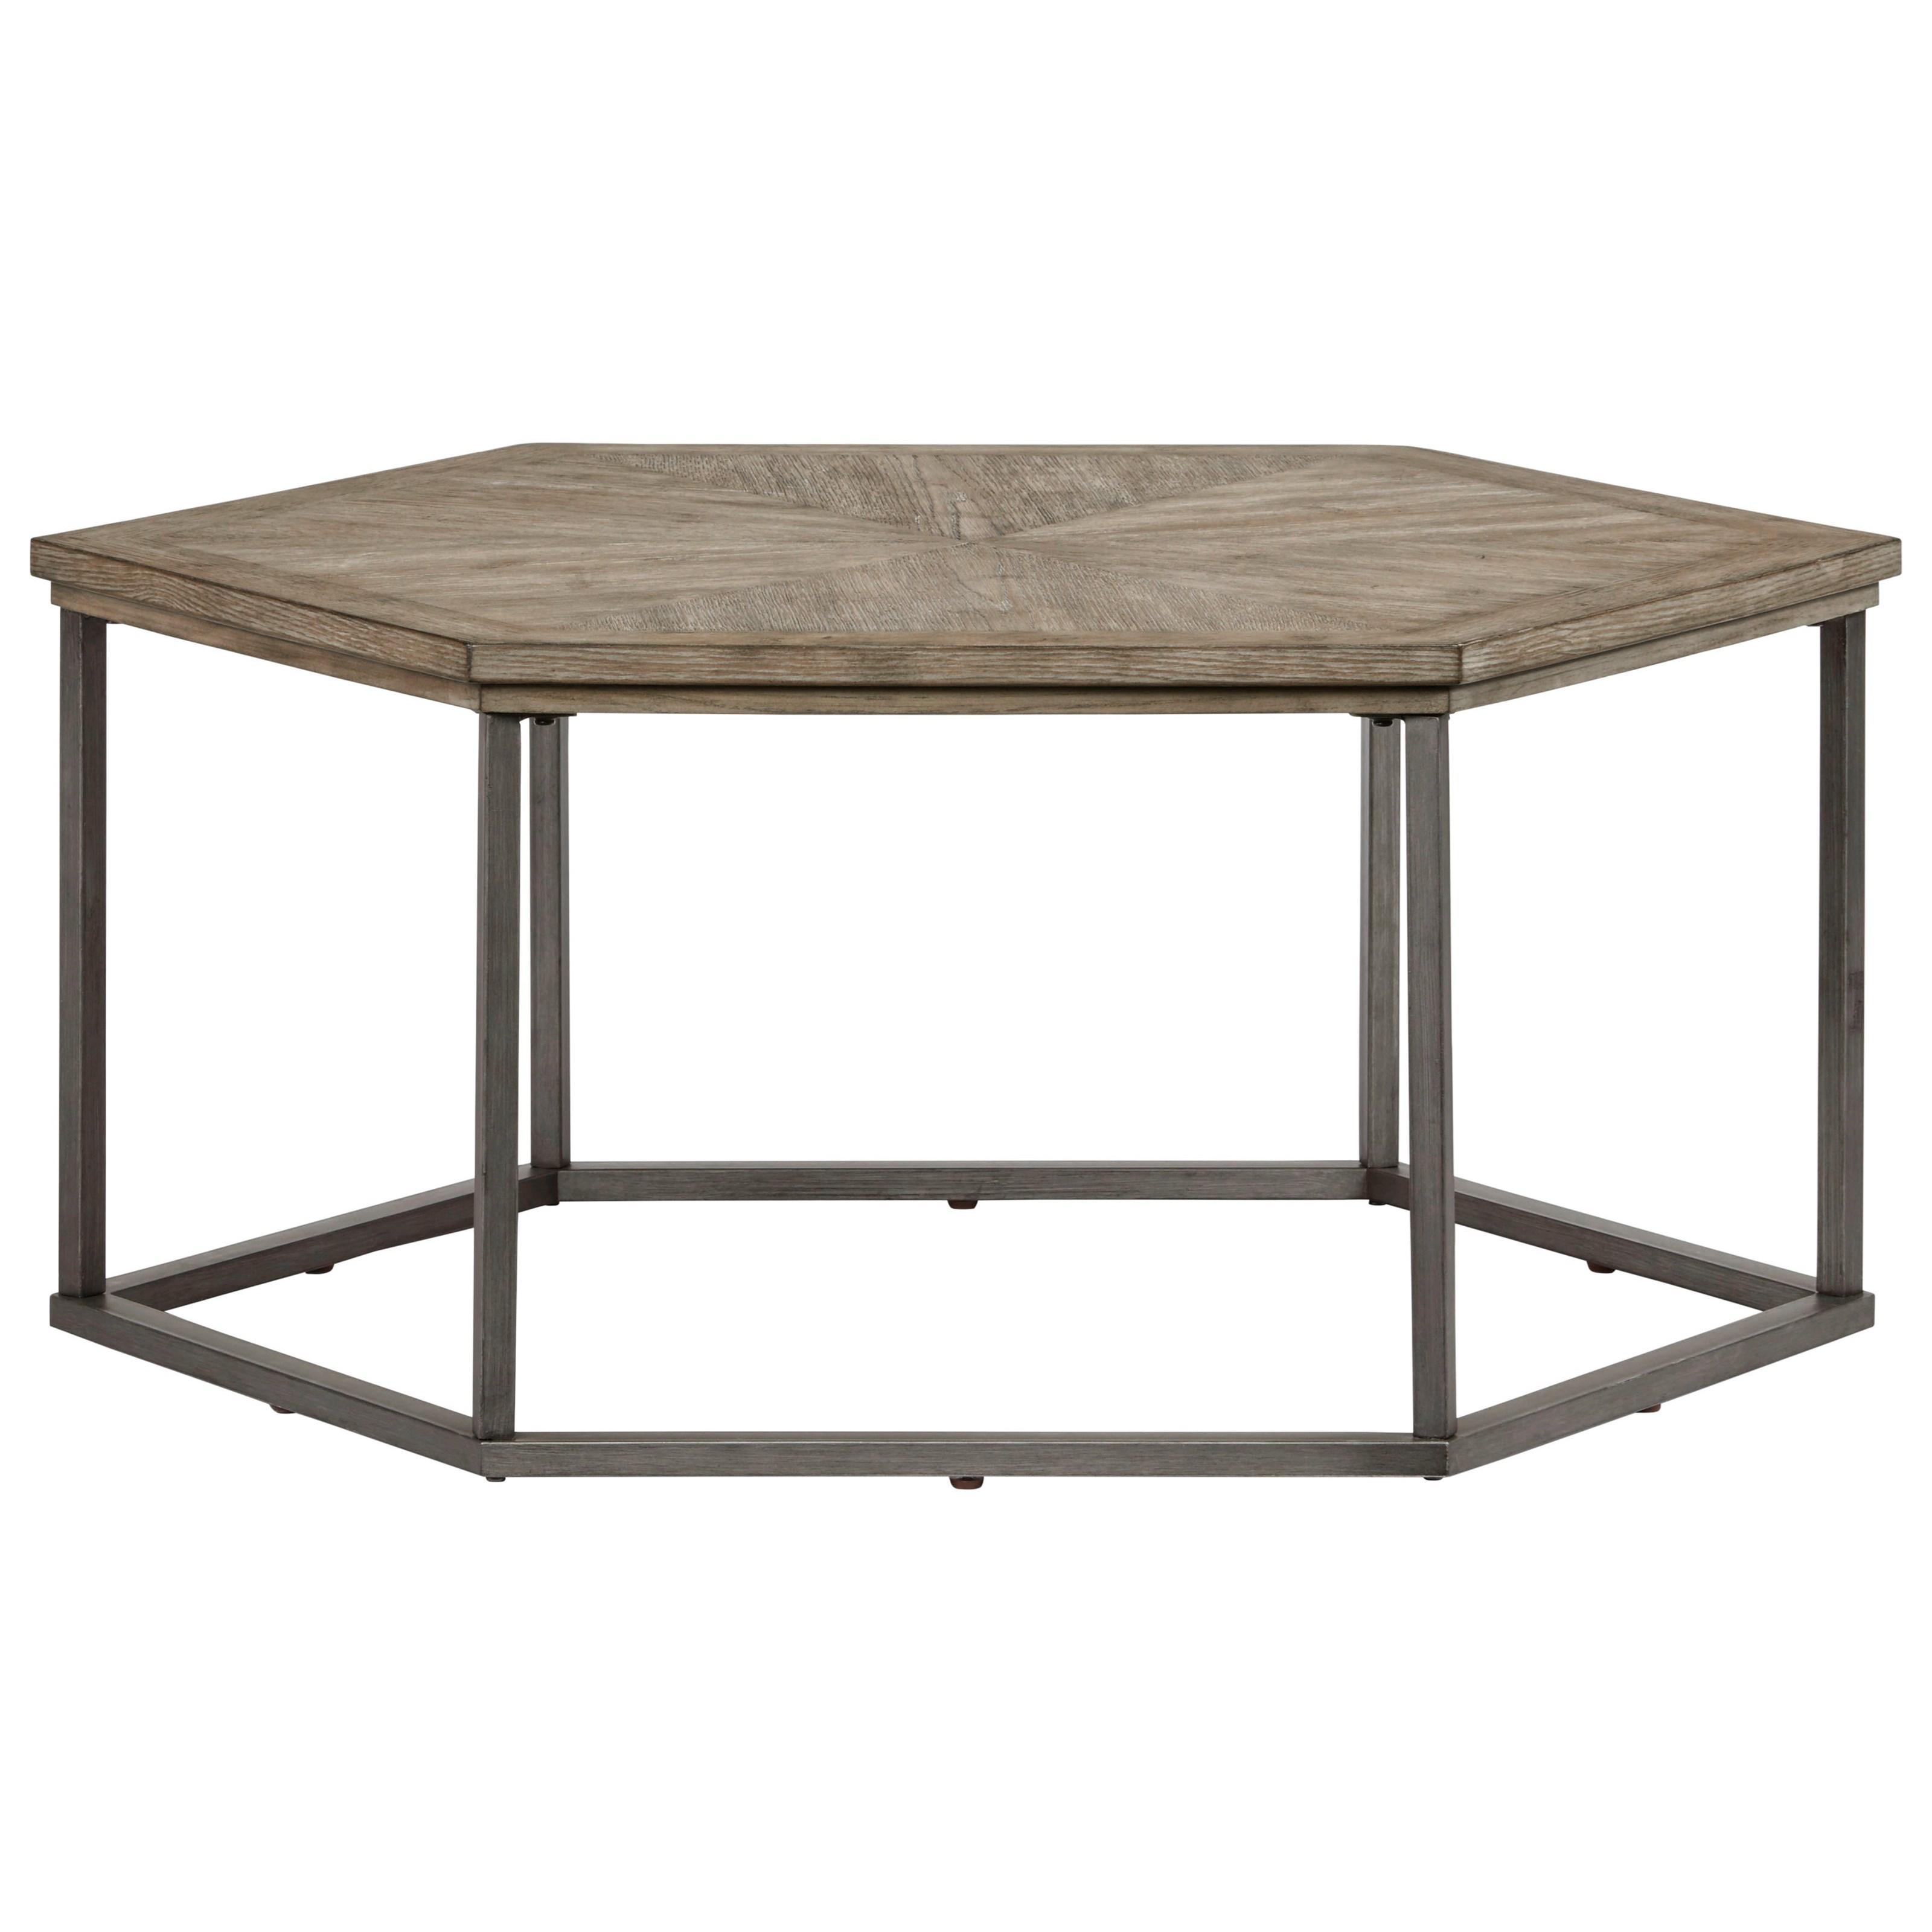 Adison Cove Hexagon Cocktail Table by Progressive Furniture at Van Hill Furniture